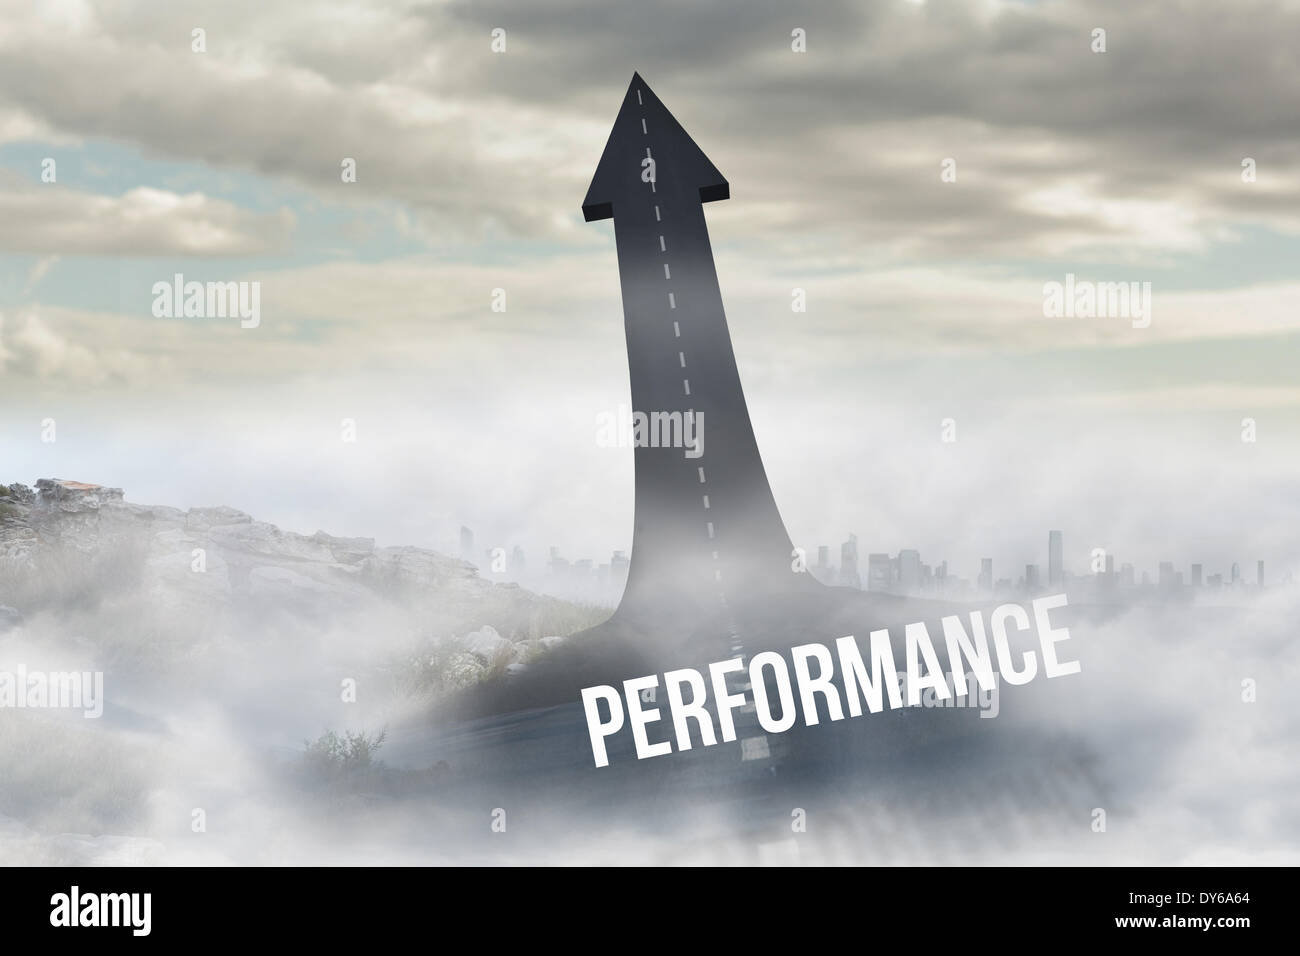 Performance against road turning into arrow - Stock Image